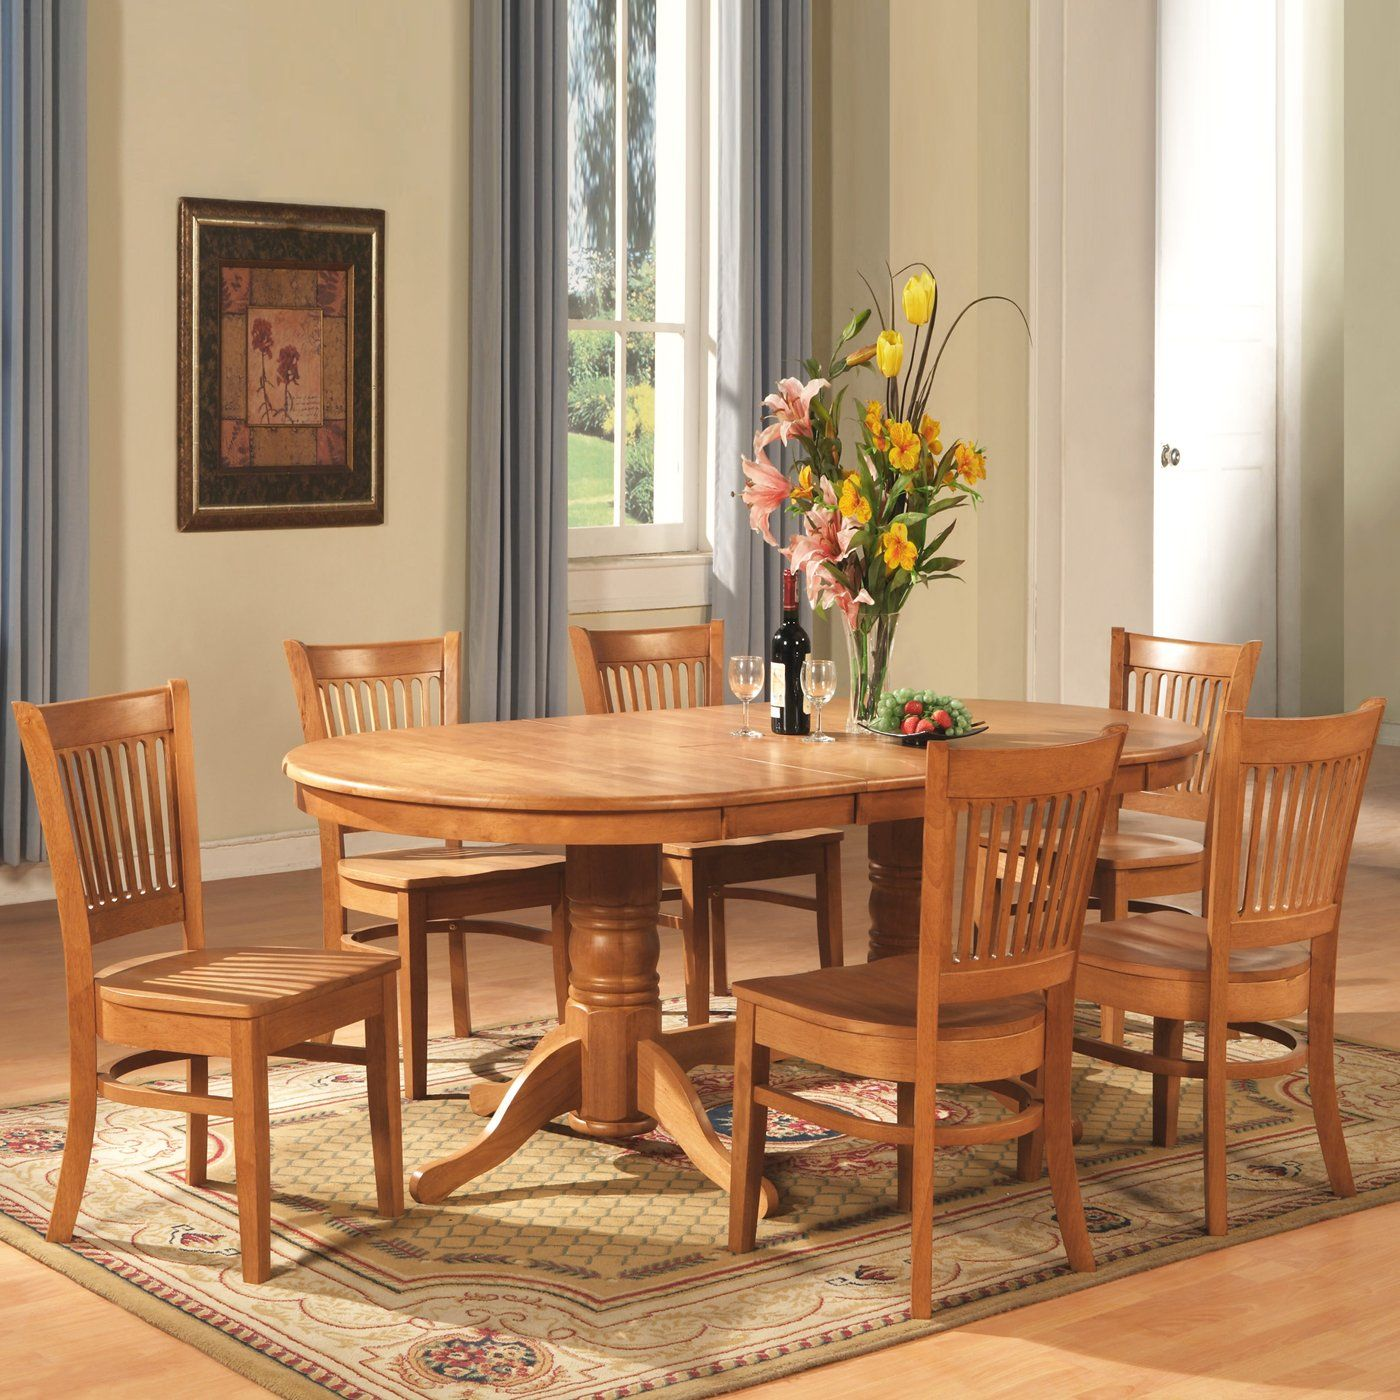 East West Furniture 8 piece Vancouver Oval Table Dining Set Oak